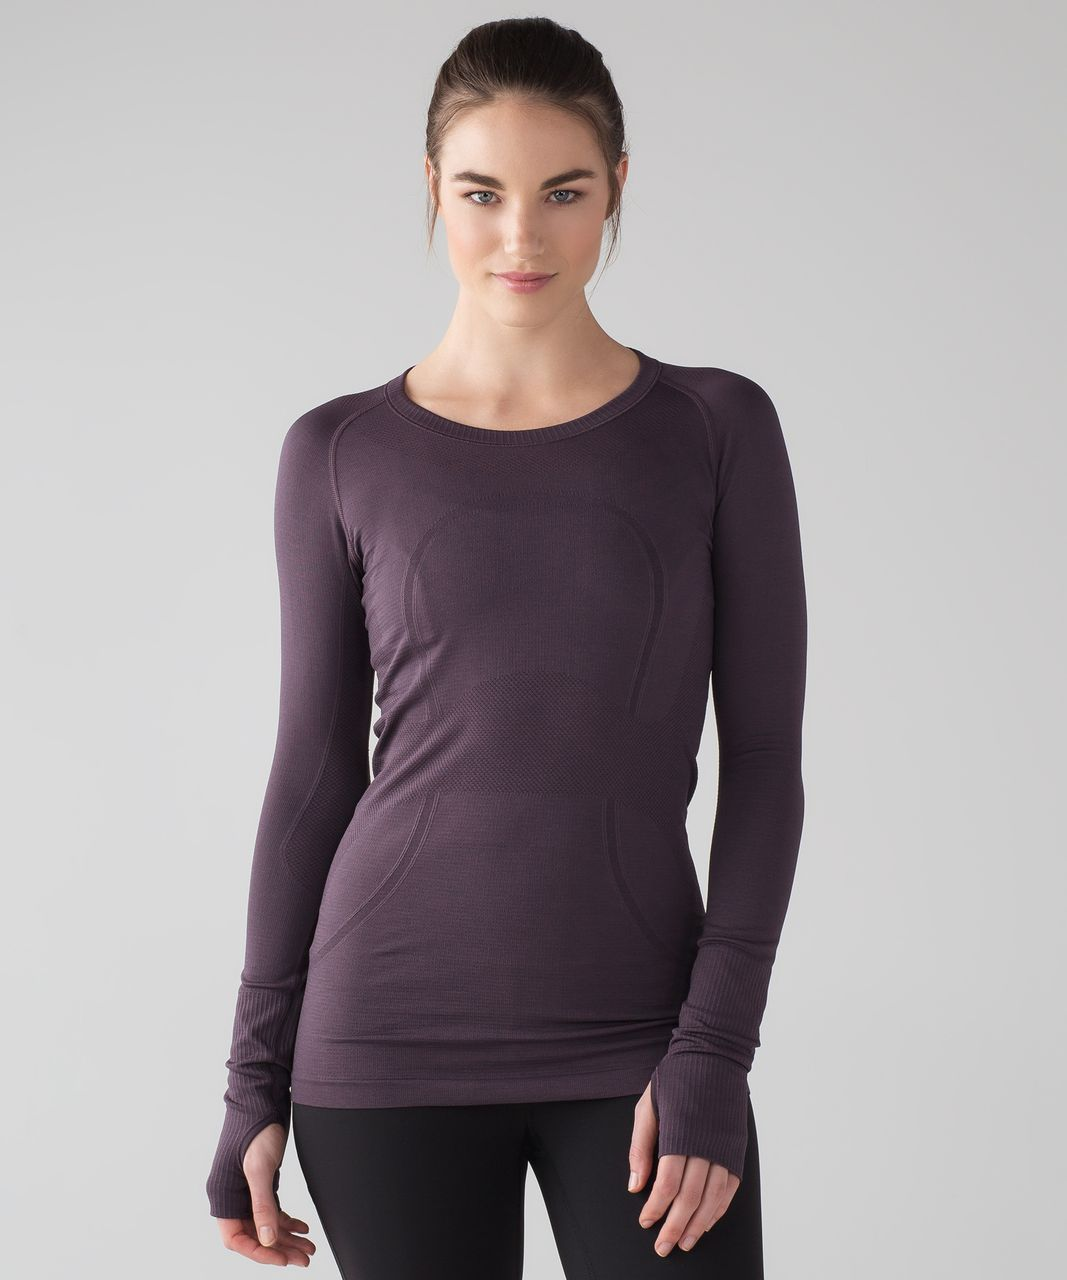 Lululemon Swiftly Tech Long Sleeve Crew - Black Currant / Black Currant